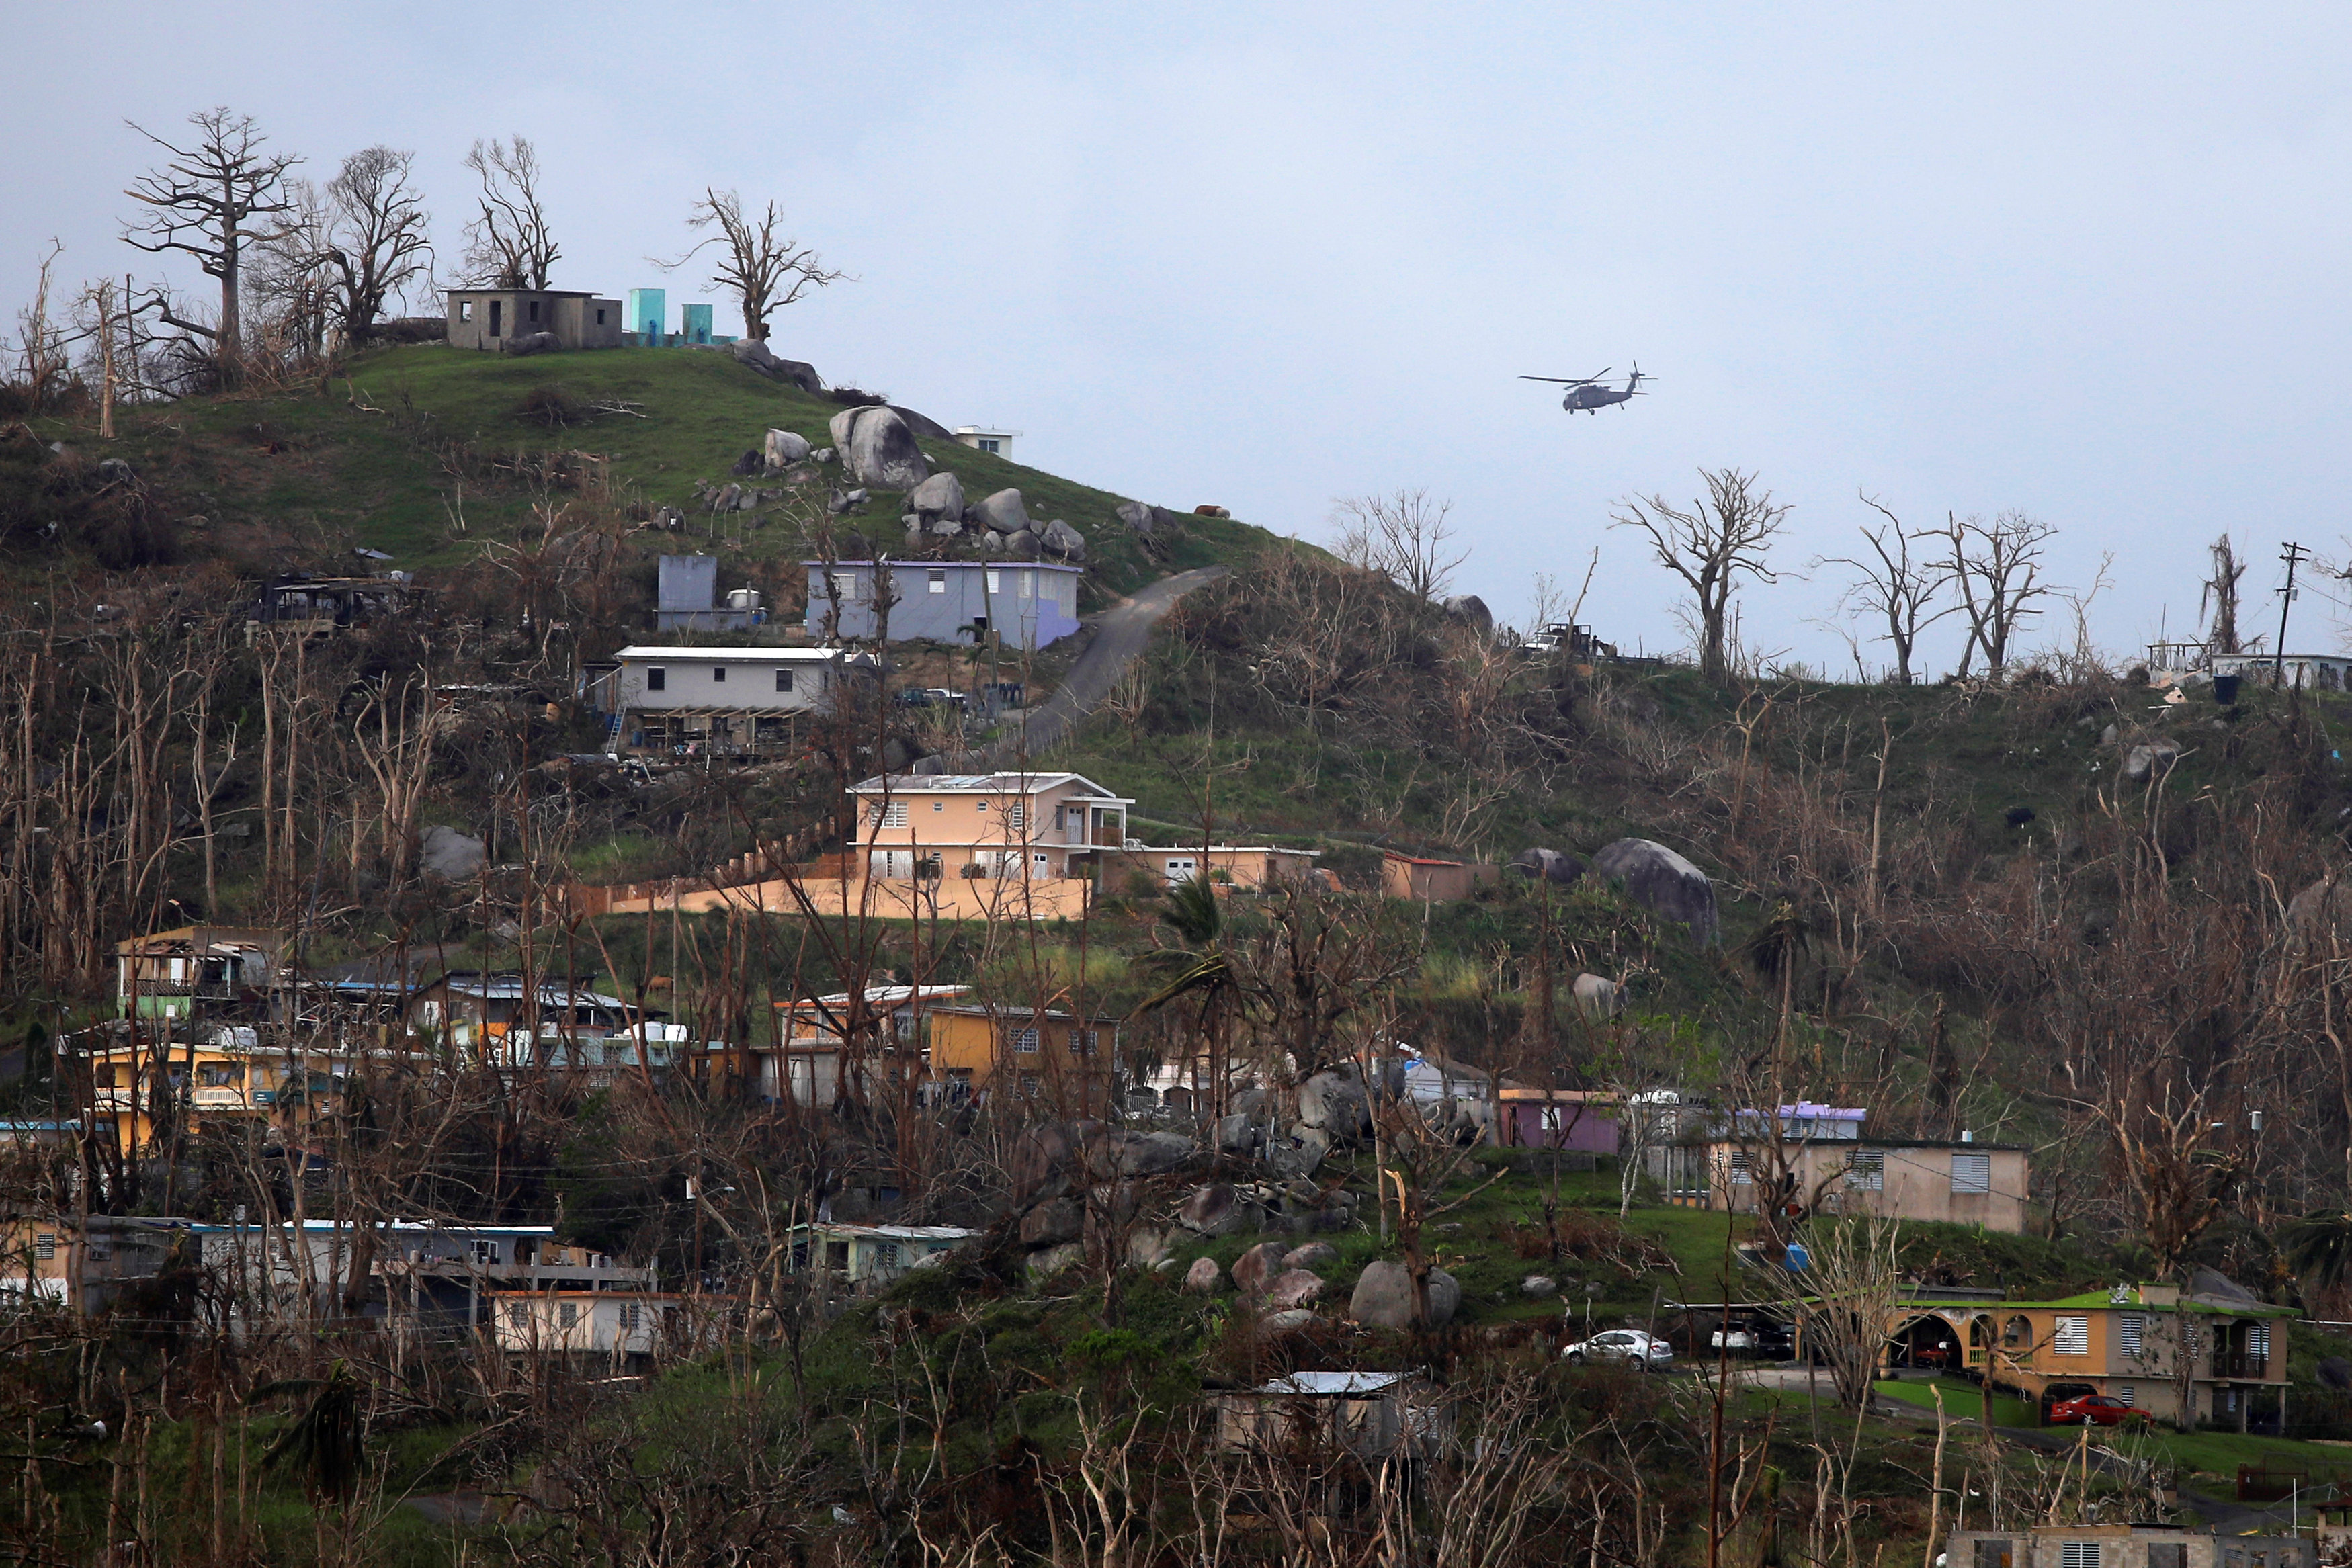 A military helicopter flight over a residential area following damages caused by Hurricane Maria near Caguas, Puerto Rico, October 1, 2017